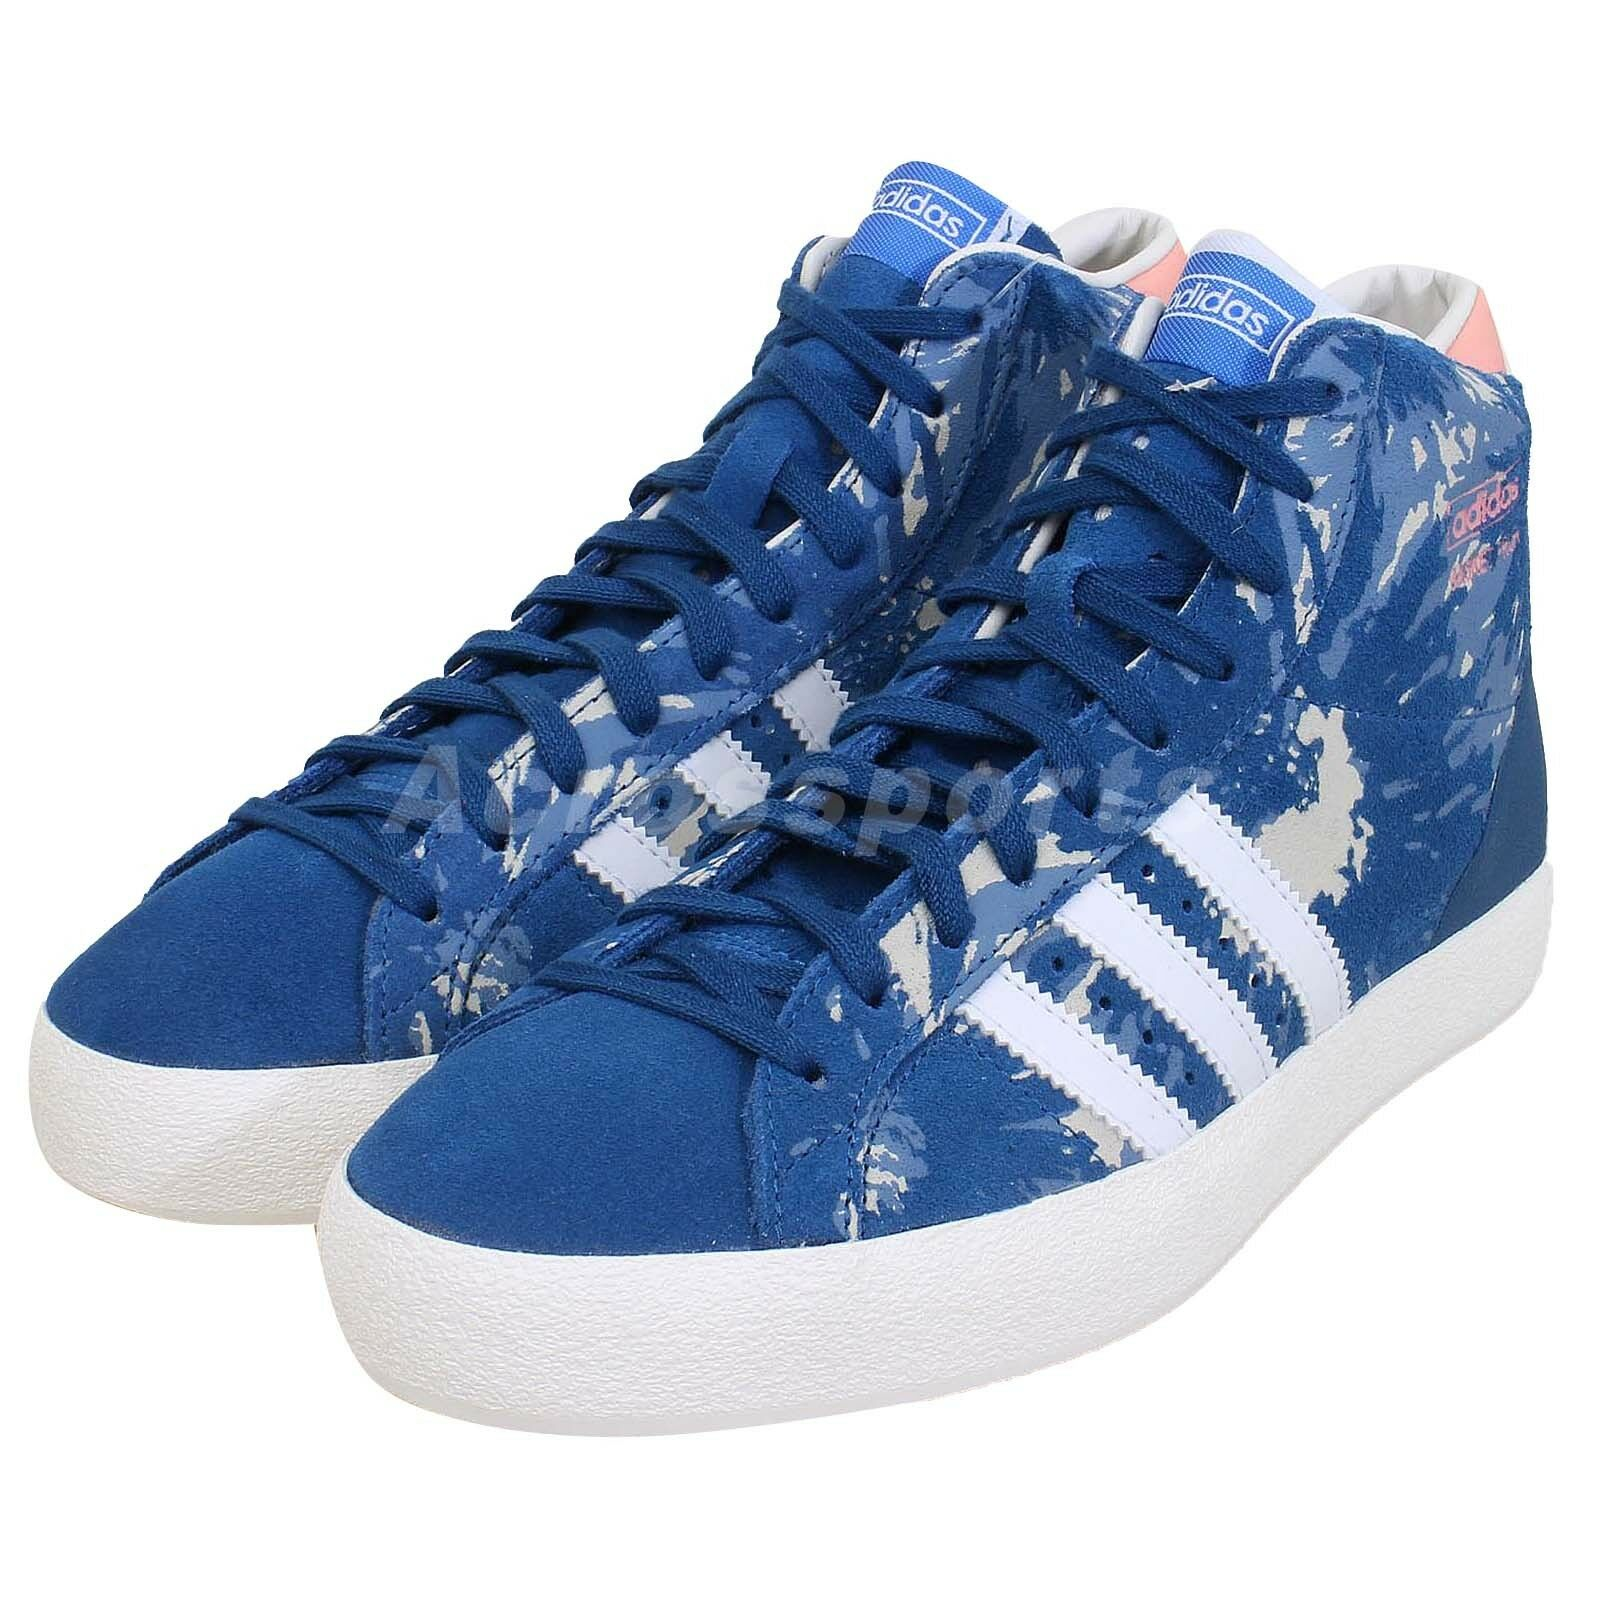 best sneakers 39748 b261b Adidas Originals Basket Profile Hi-Top Trainers Lace Up Womens Boots Size 4  UK